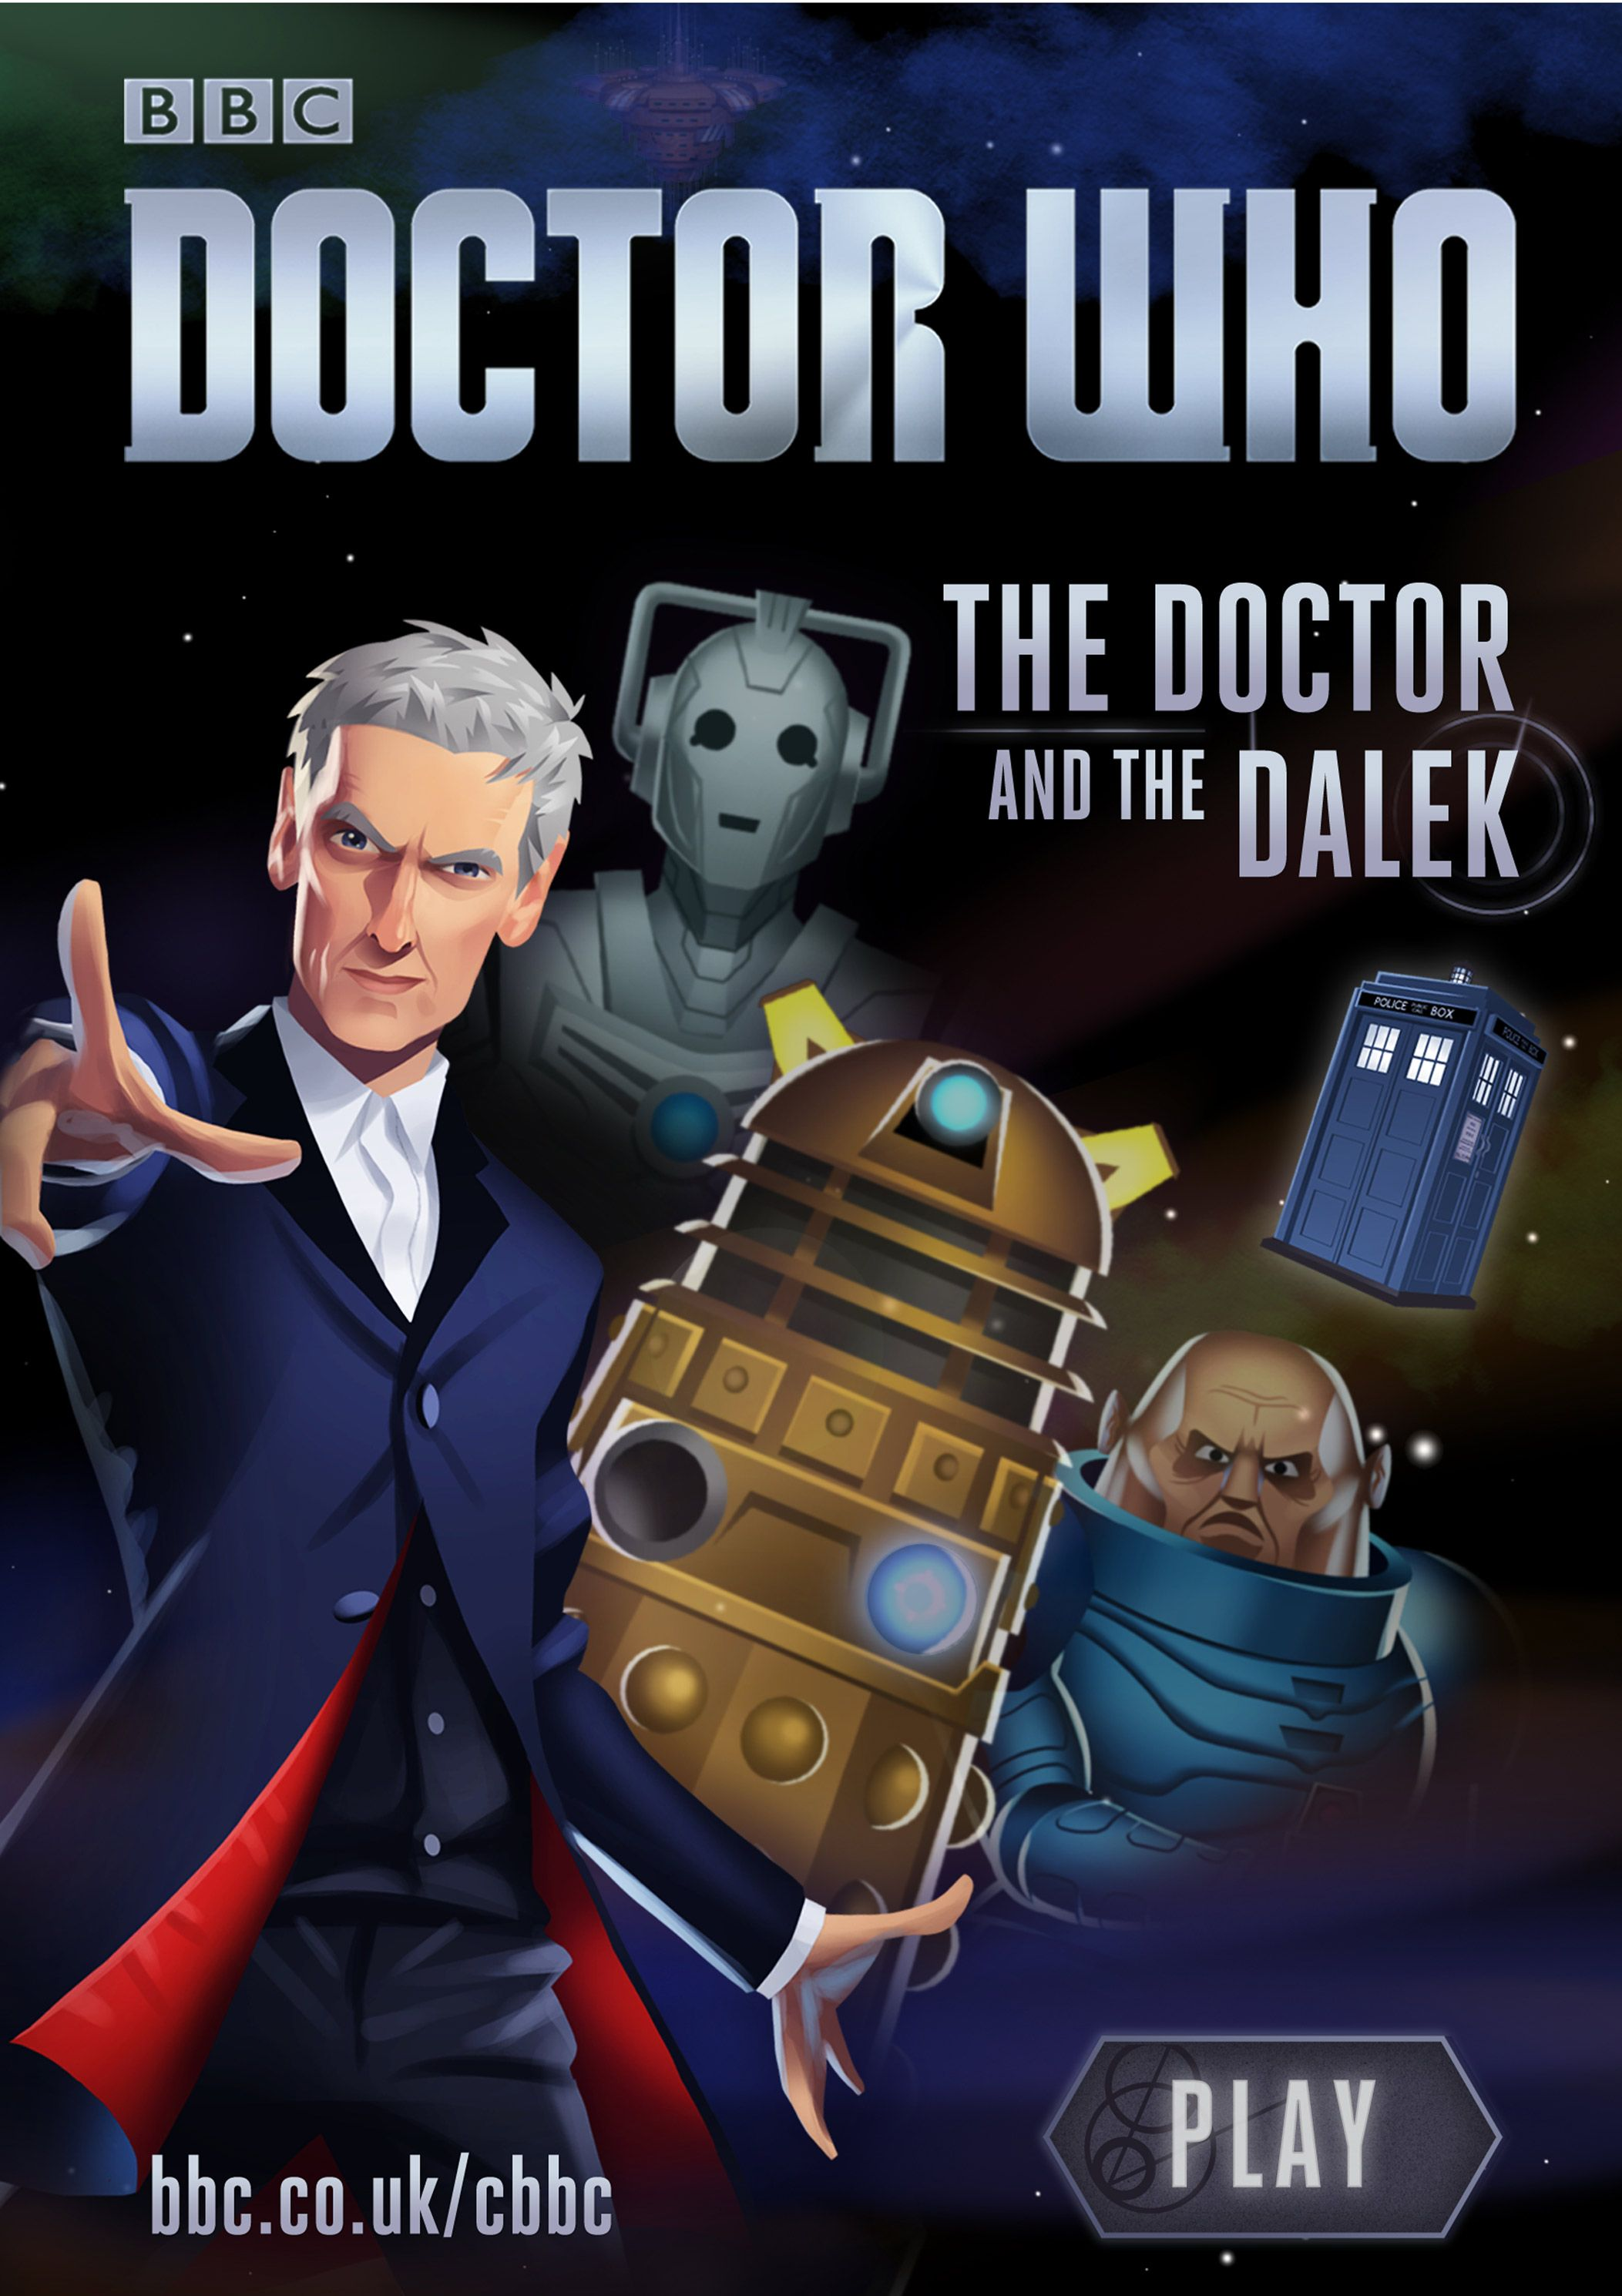 Bbc doctor who games